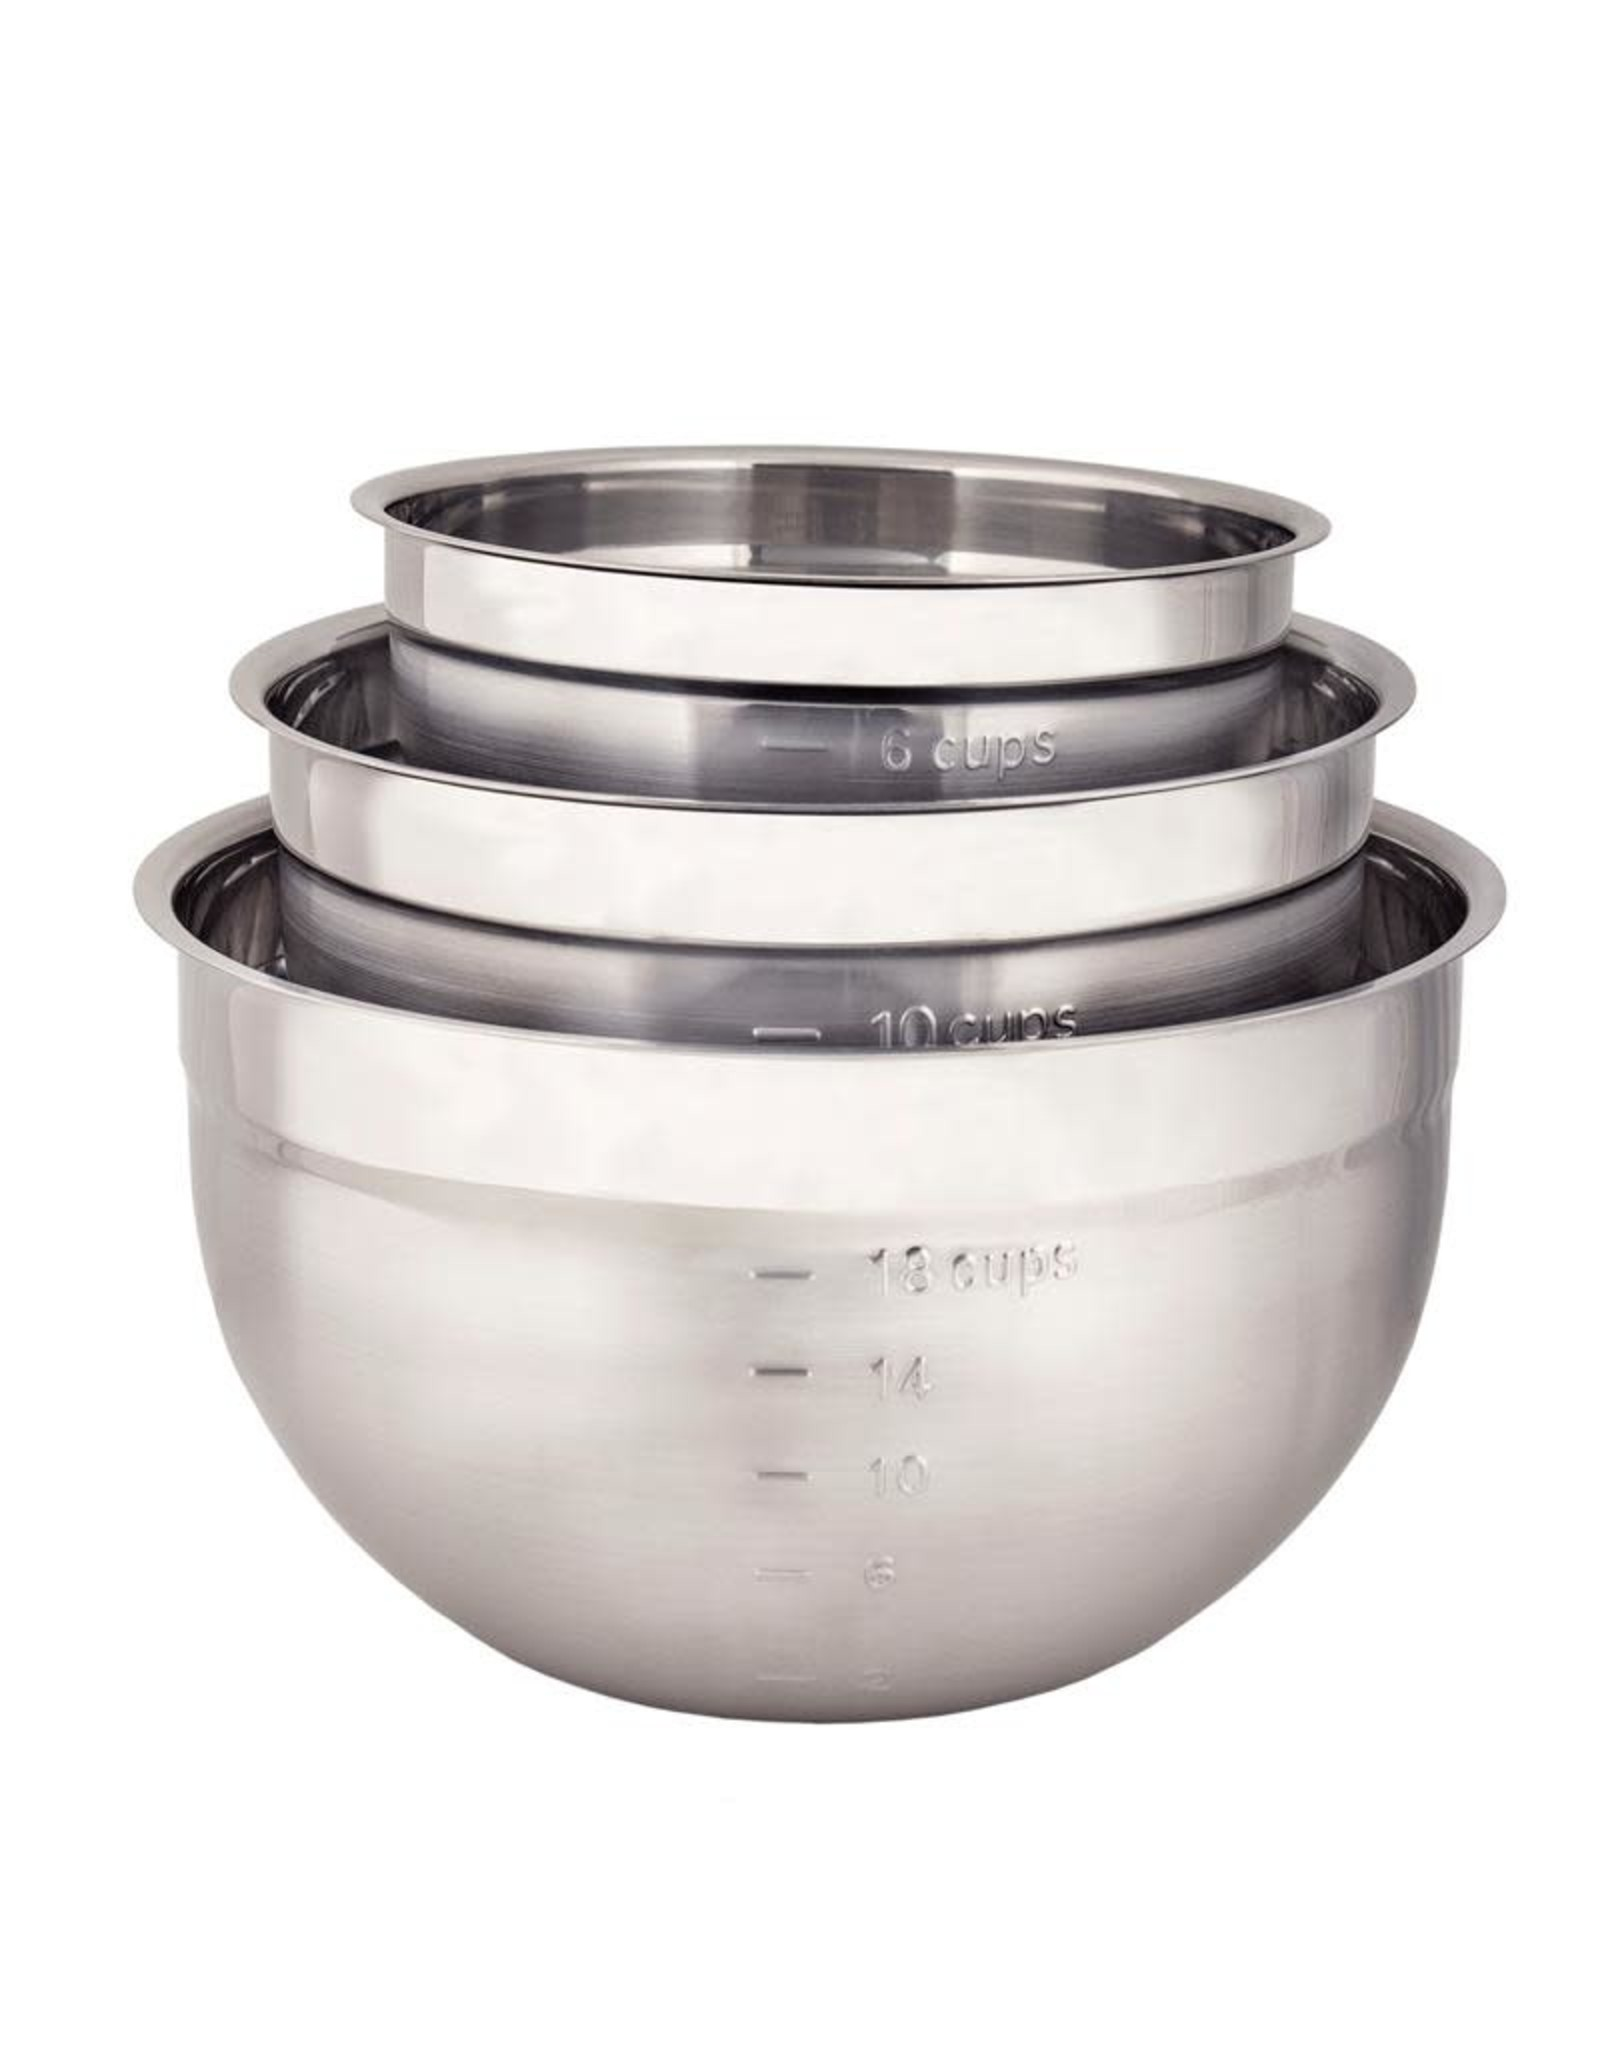 Cuisipro CUISIPRO Stainless Steel 3pc Bowl Set